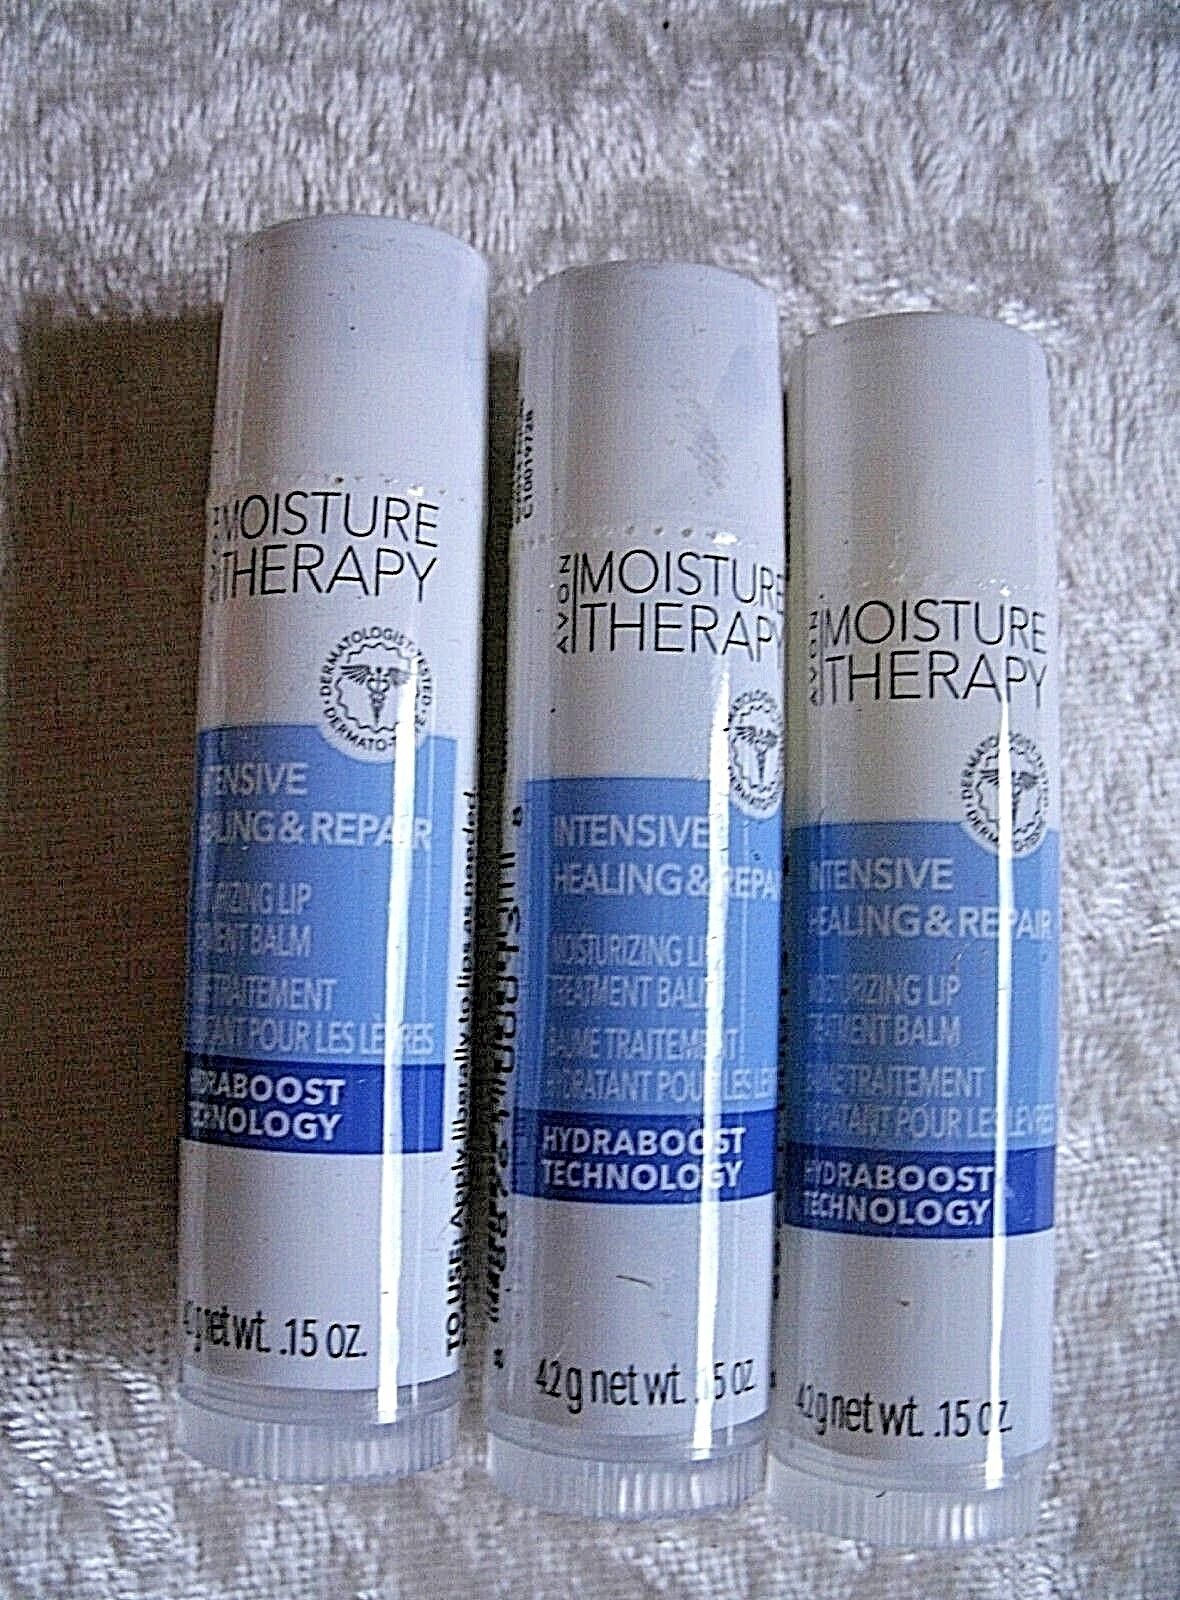 Moisture Therapy Intensive Healing and Repair Moisturizing L